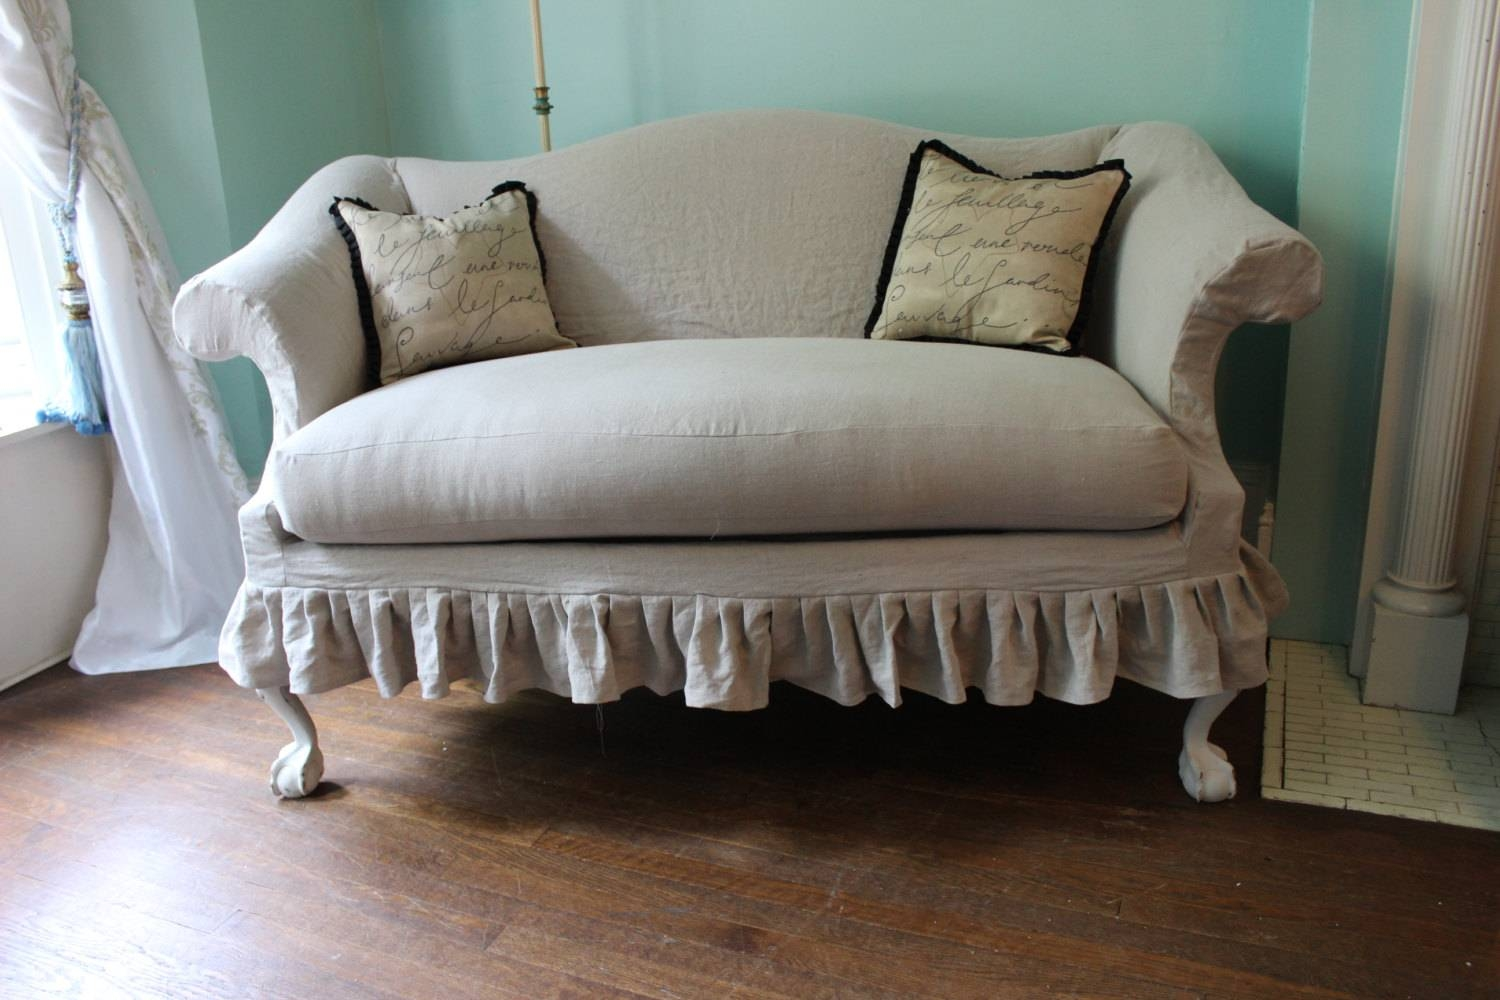 Old Reclining Loveseat Slipcover With White Color 2 Cushions And throughout Camel Back Sofa Slipcovers (Image 15 of 15)